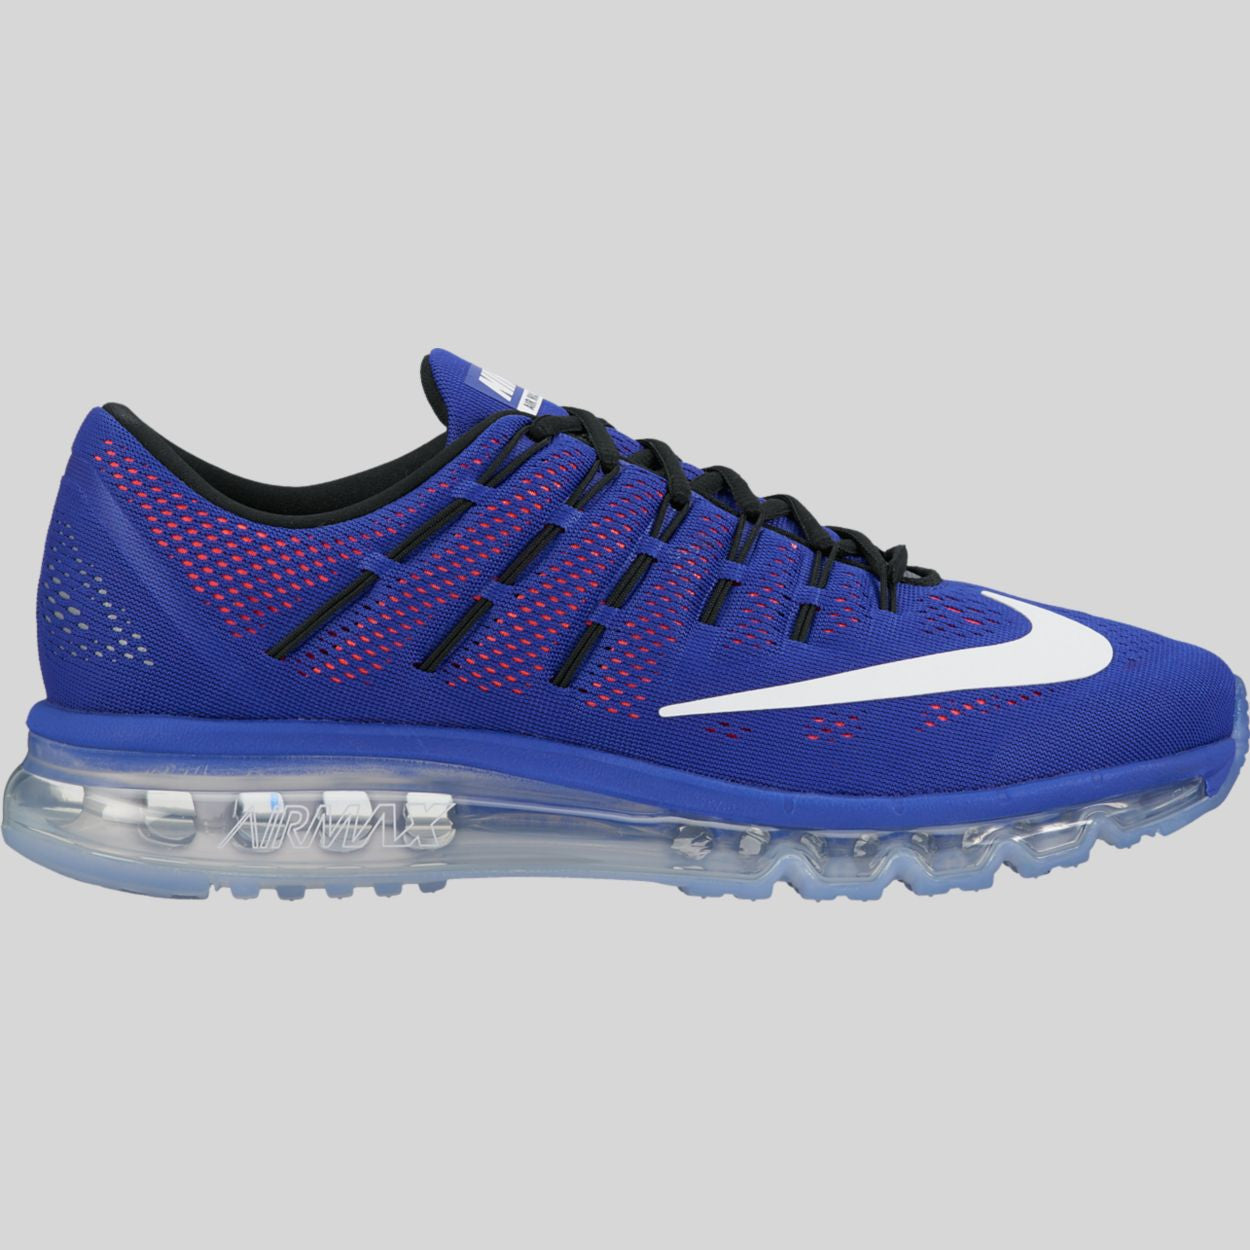 low priced d0b28 07e69 ... Nike Air Max 2016 Concord White Total Crimson (806771-405) Bright  CrimsonBlackUniversity Red Womens Nike Air Max 2016 Running Shoes ...